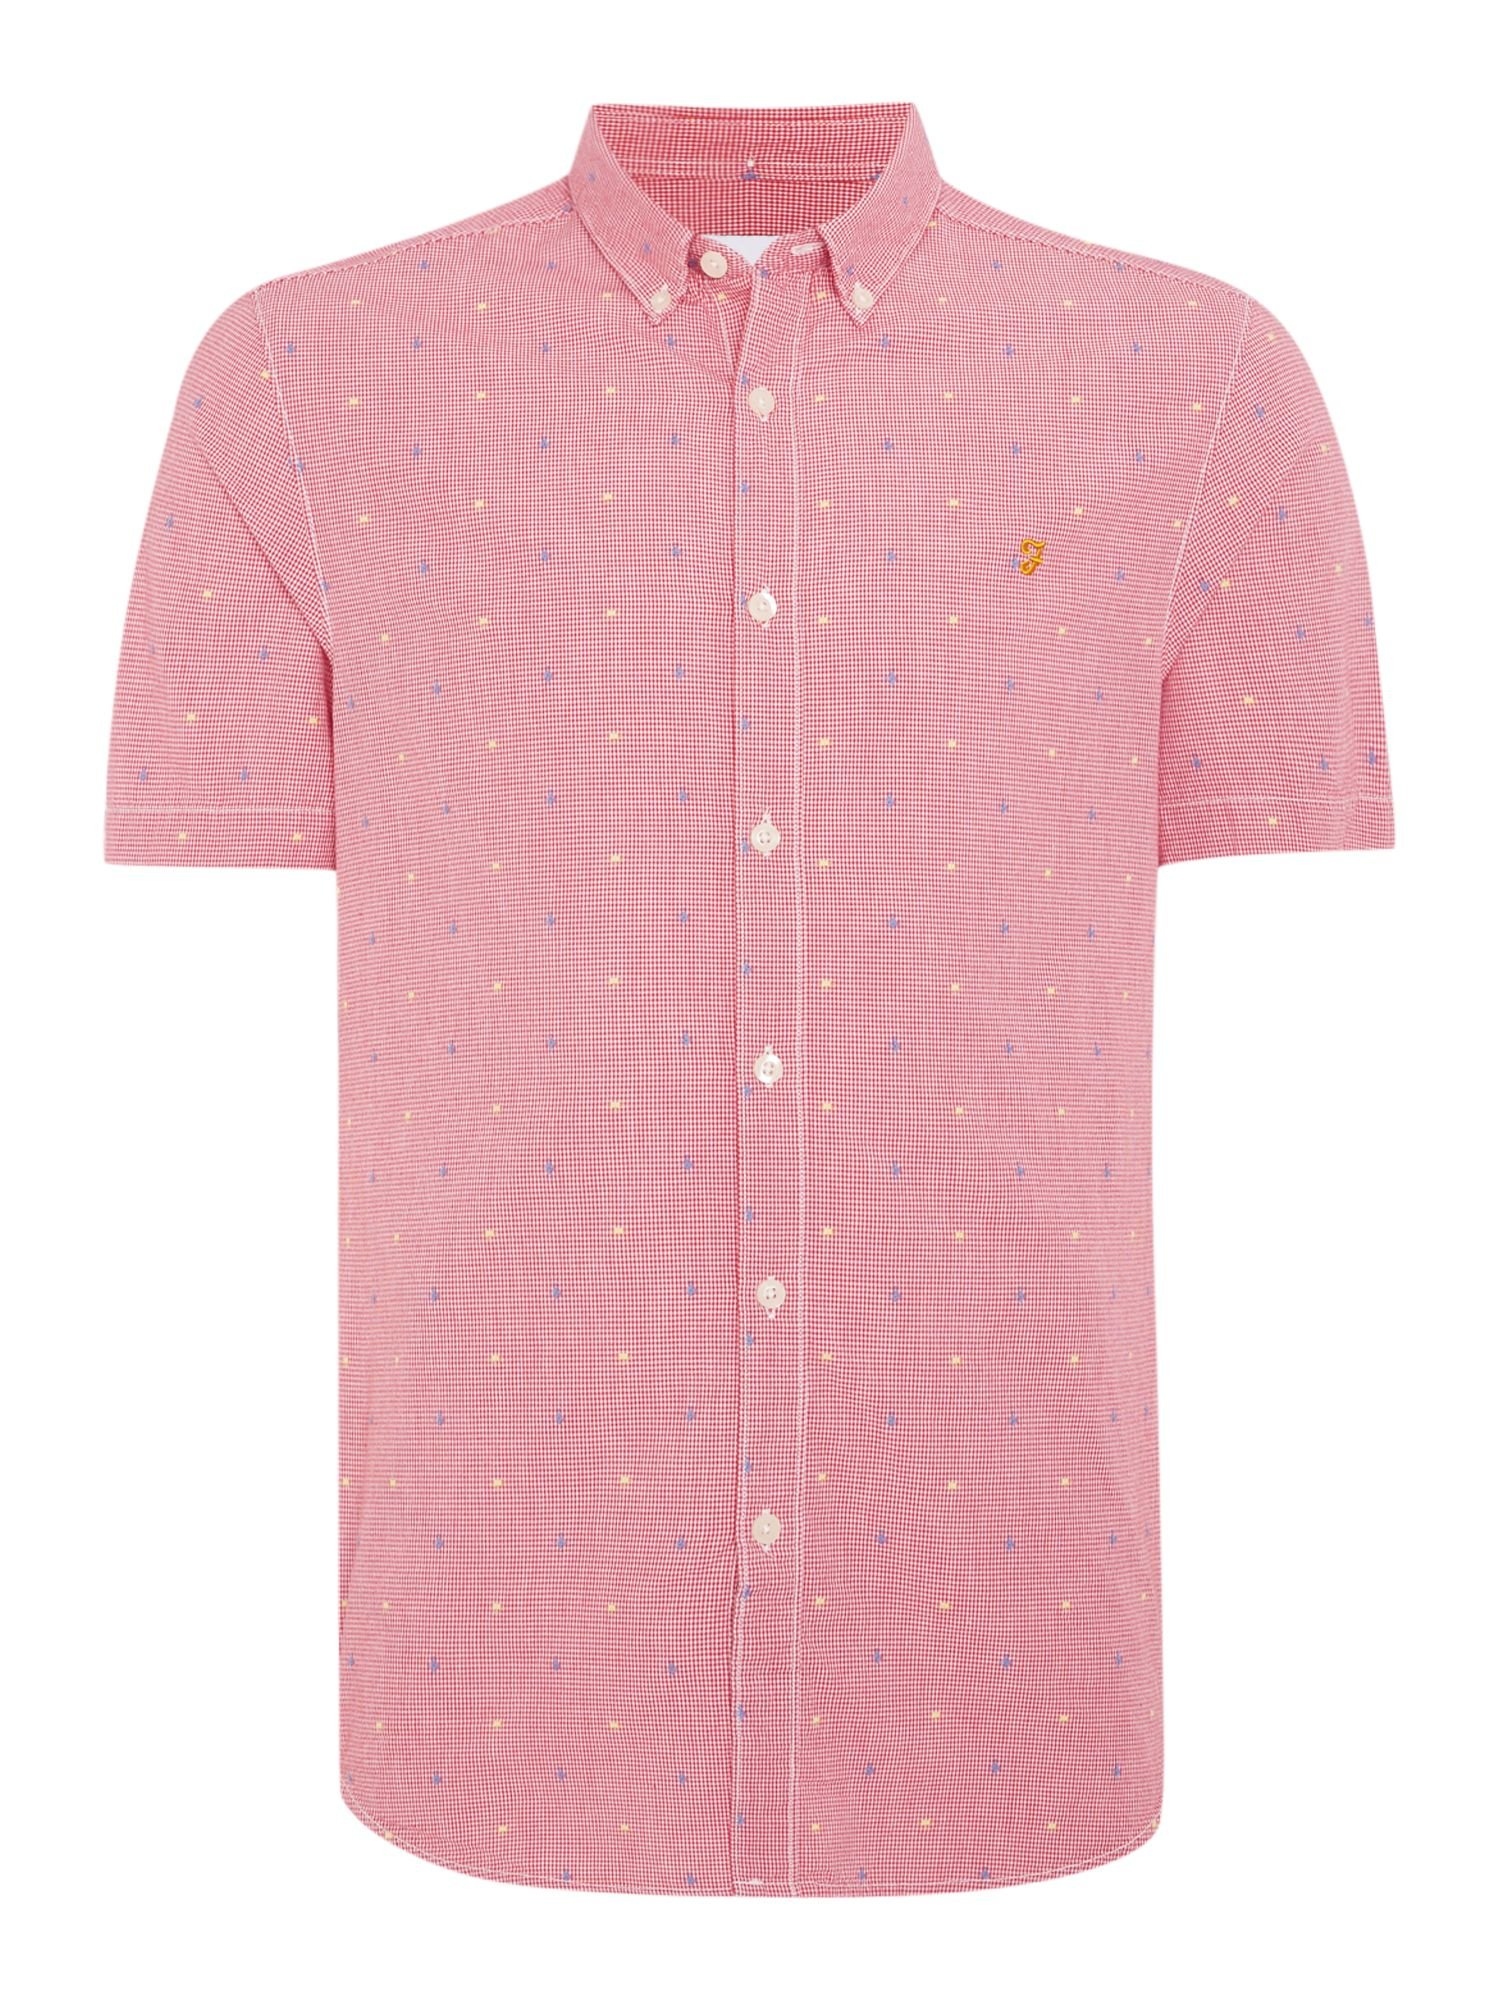 Farah thirlby slim fit short sleeve gingham shirt in red for Slim fit gingham check shirt